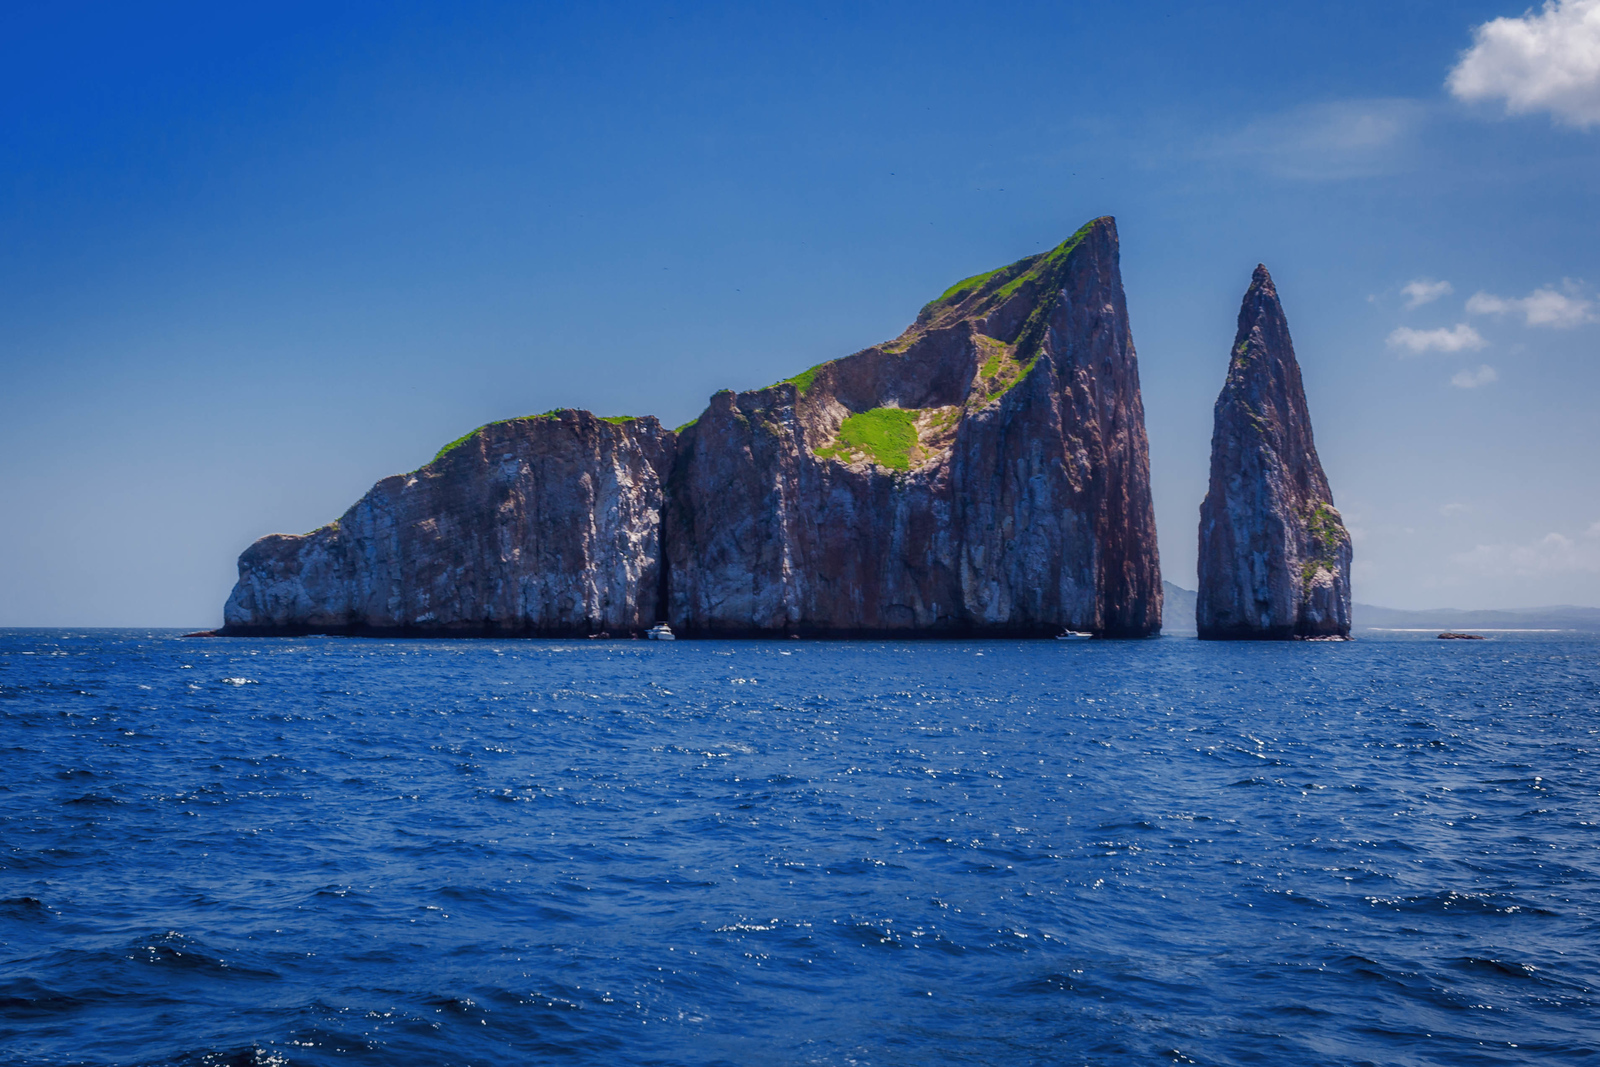 Kicker Rock where you can dive with sharks.